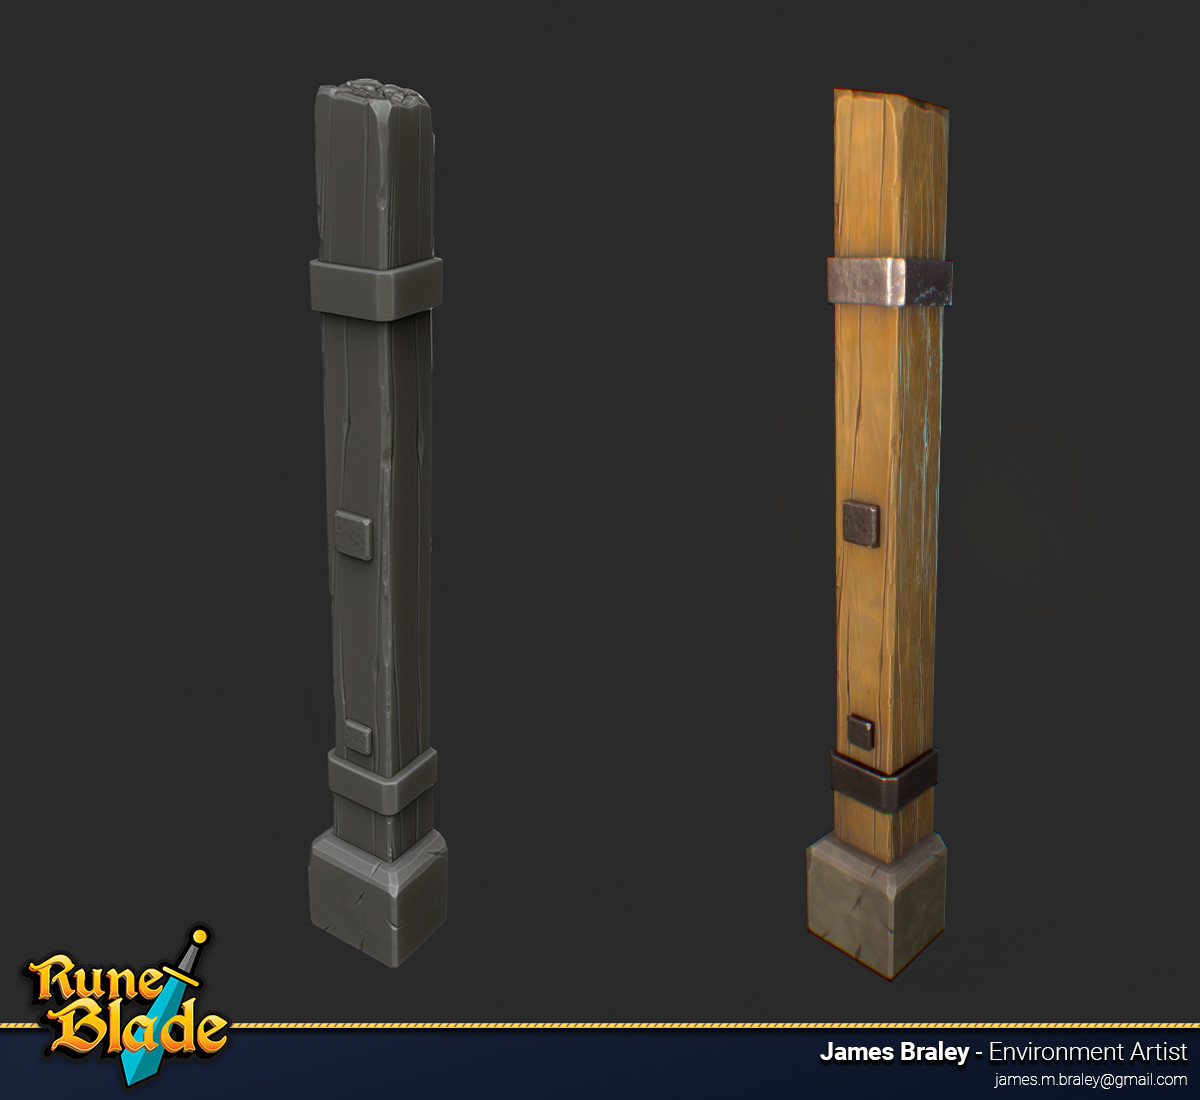 James braley braley runeblade pillar